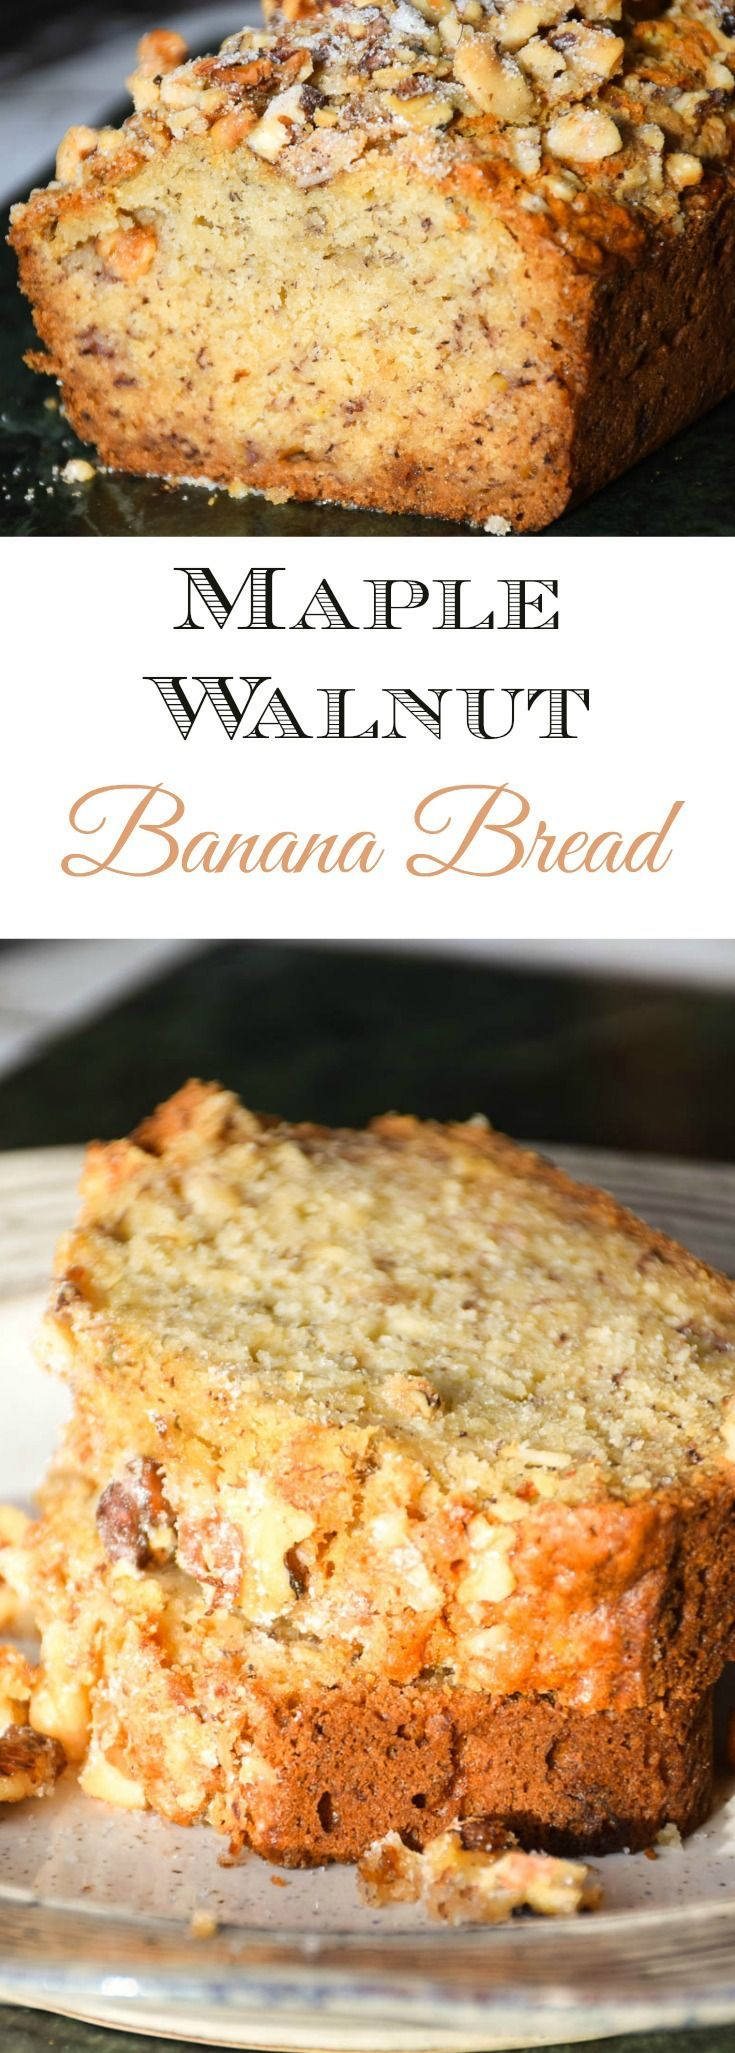 "Maple Walnut Banana Bread has great flavor buried in a slightly sugared walnut topping. Amazing texture and taste, add this recipe to your ""make next"" list!"